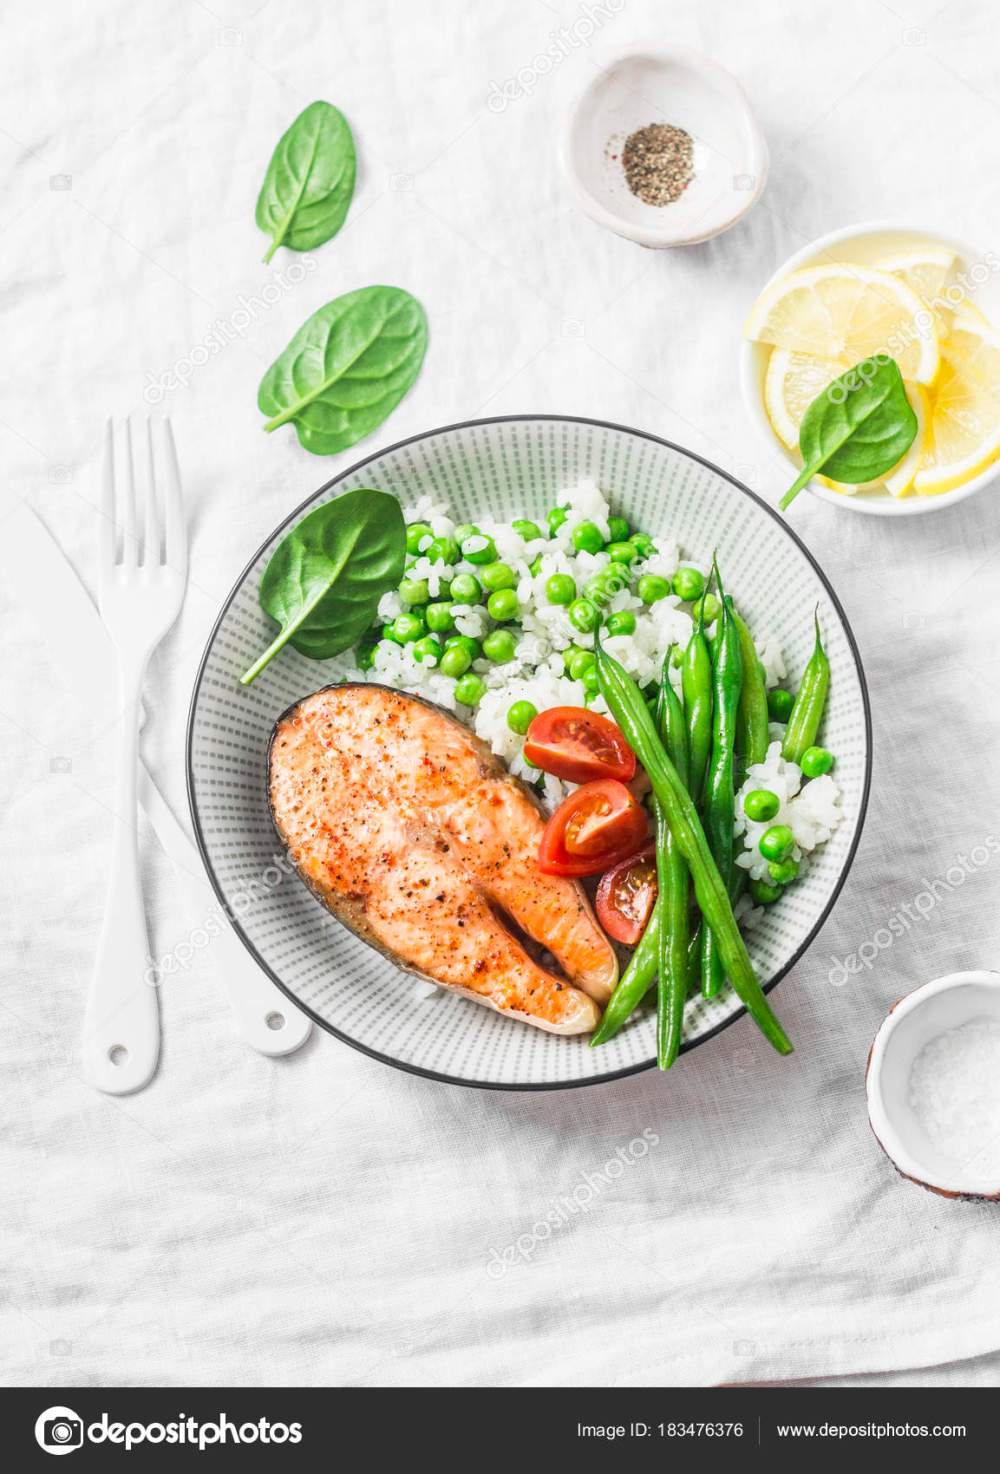 medium resolution of healthy balanced meal lunch plate baked salmon rice vegetables light stock photo